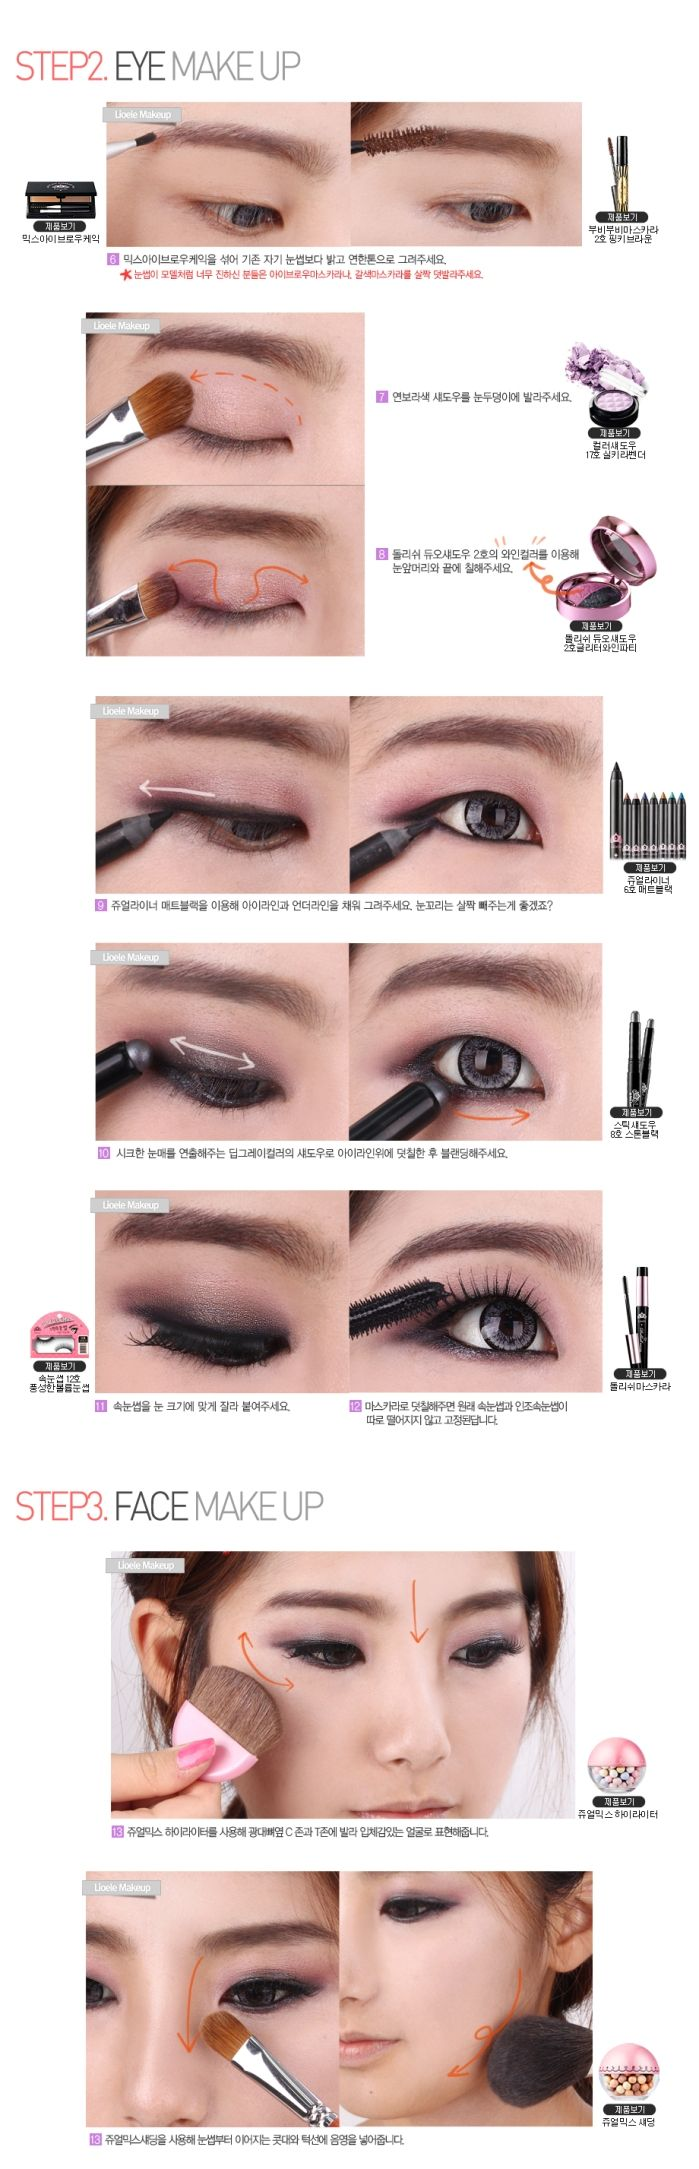 Great smokey-eye effect for Asian monolids! :) Should play with this using different colors!